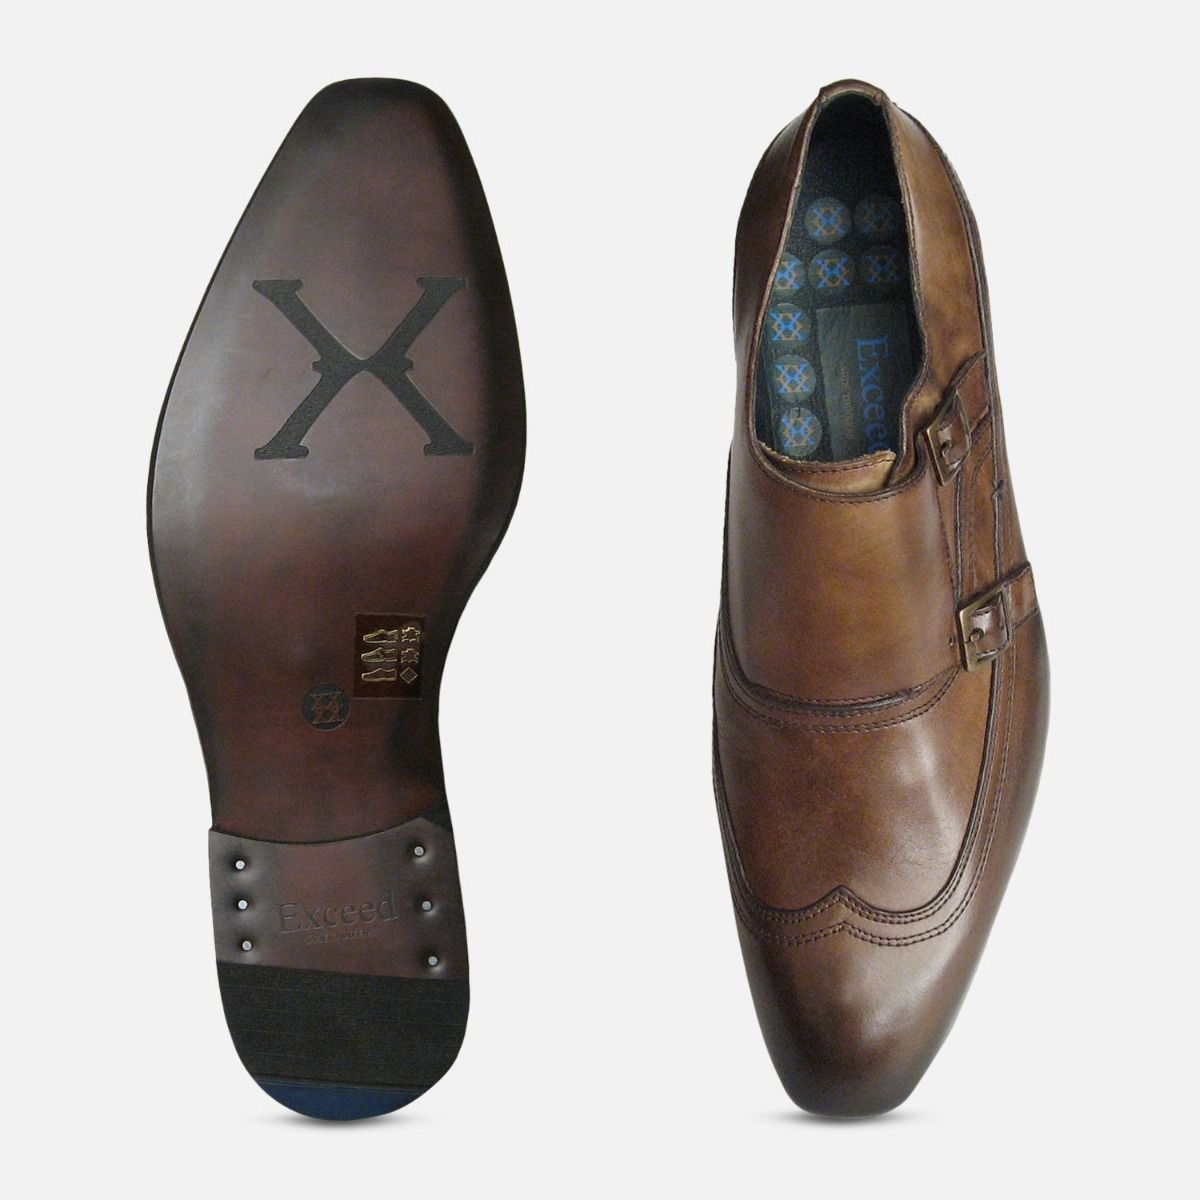 Designer Double Buckle Monk Shoes in Brown by Exceed